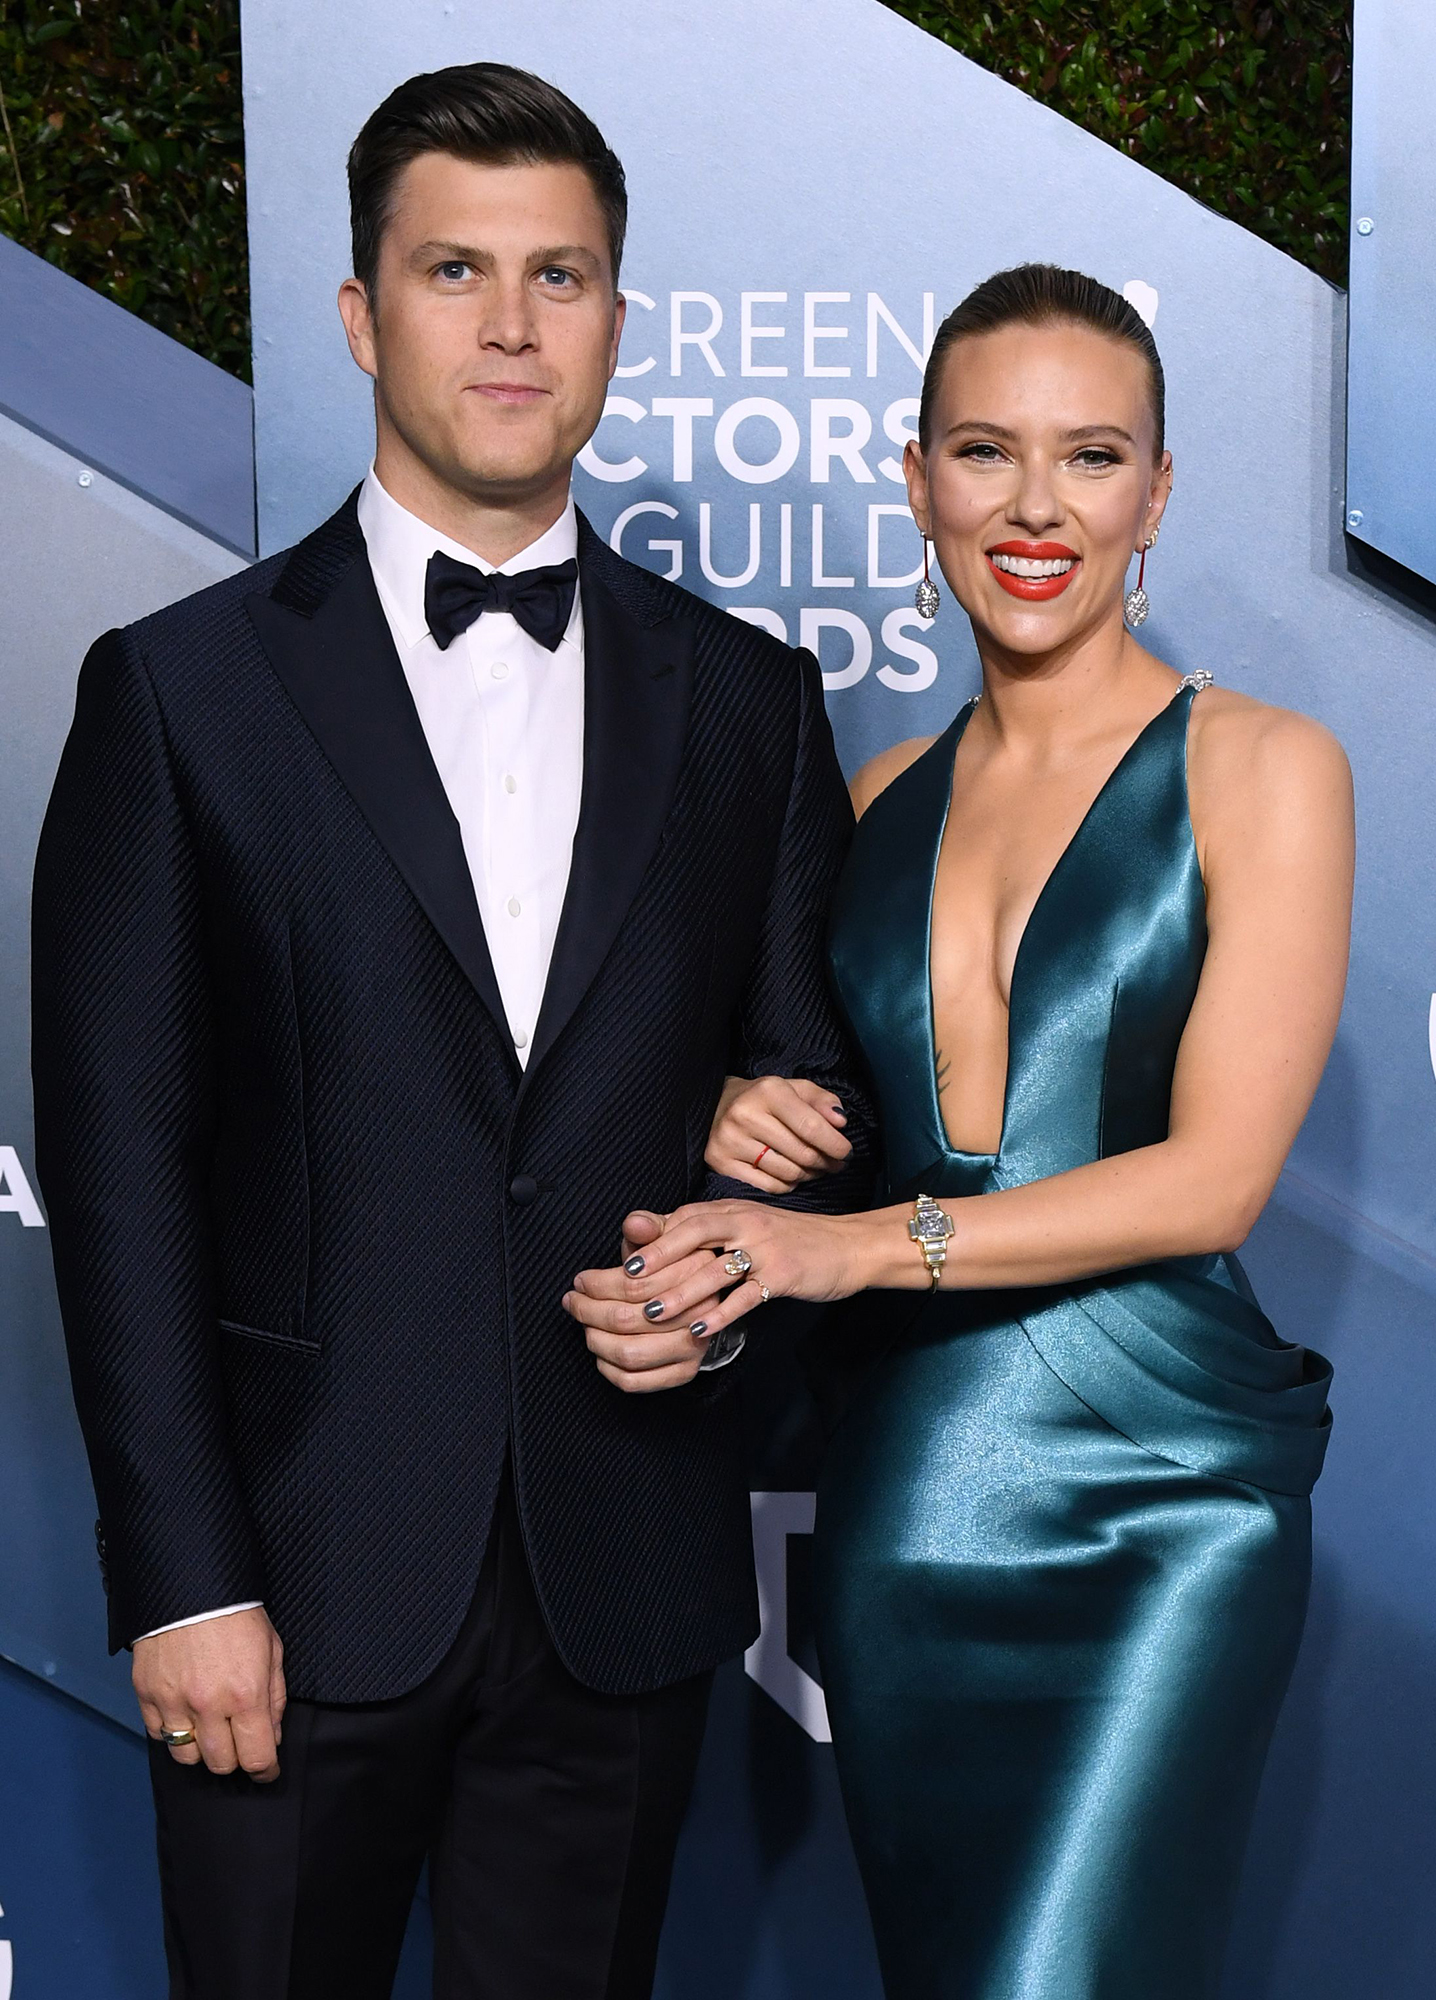 Colin Jost Worried About Losing His Identity With Scarlett Johansson